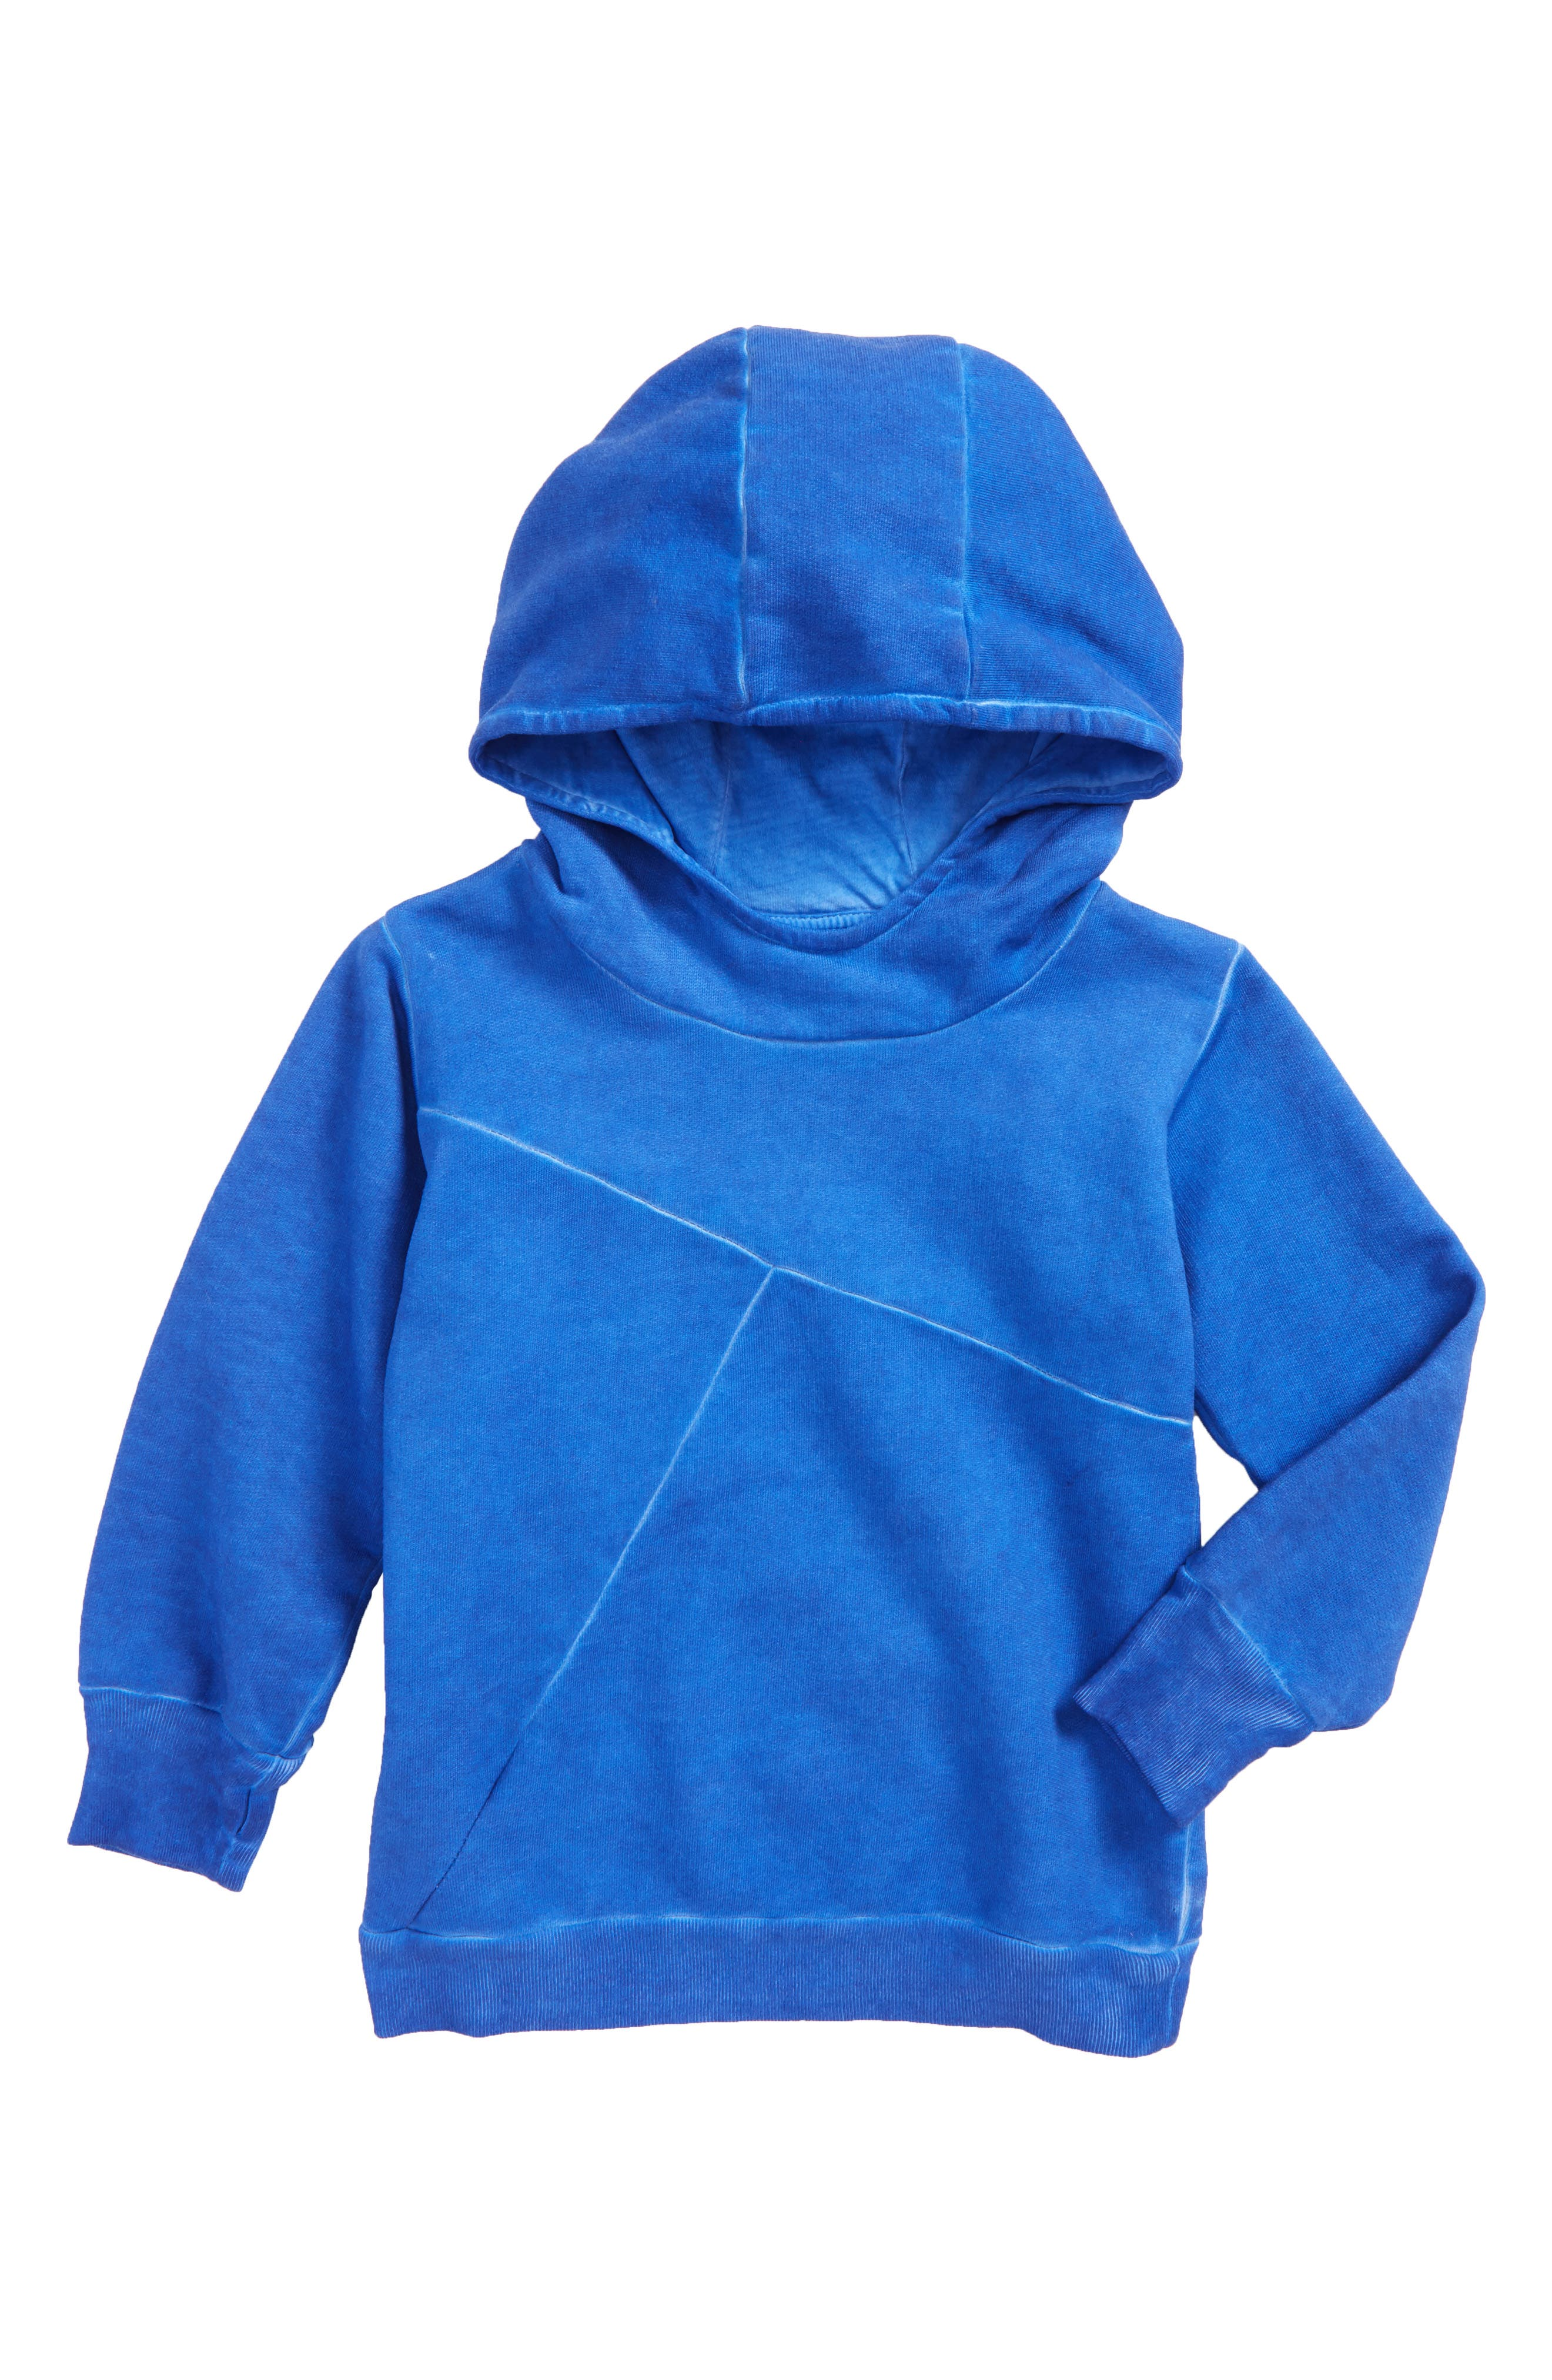 Numbered Hoodie,                             Main thumbnail 1, color,                             400